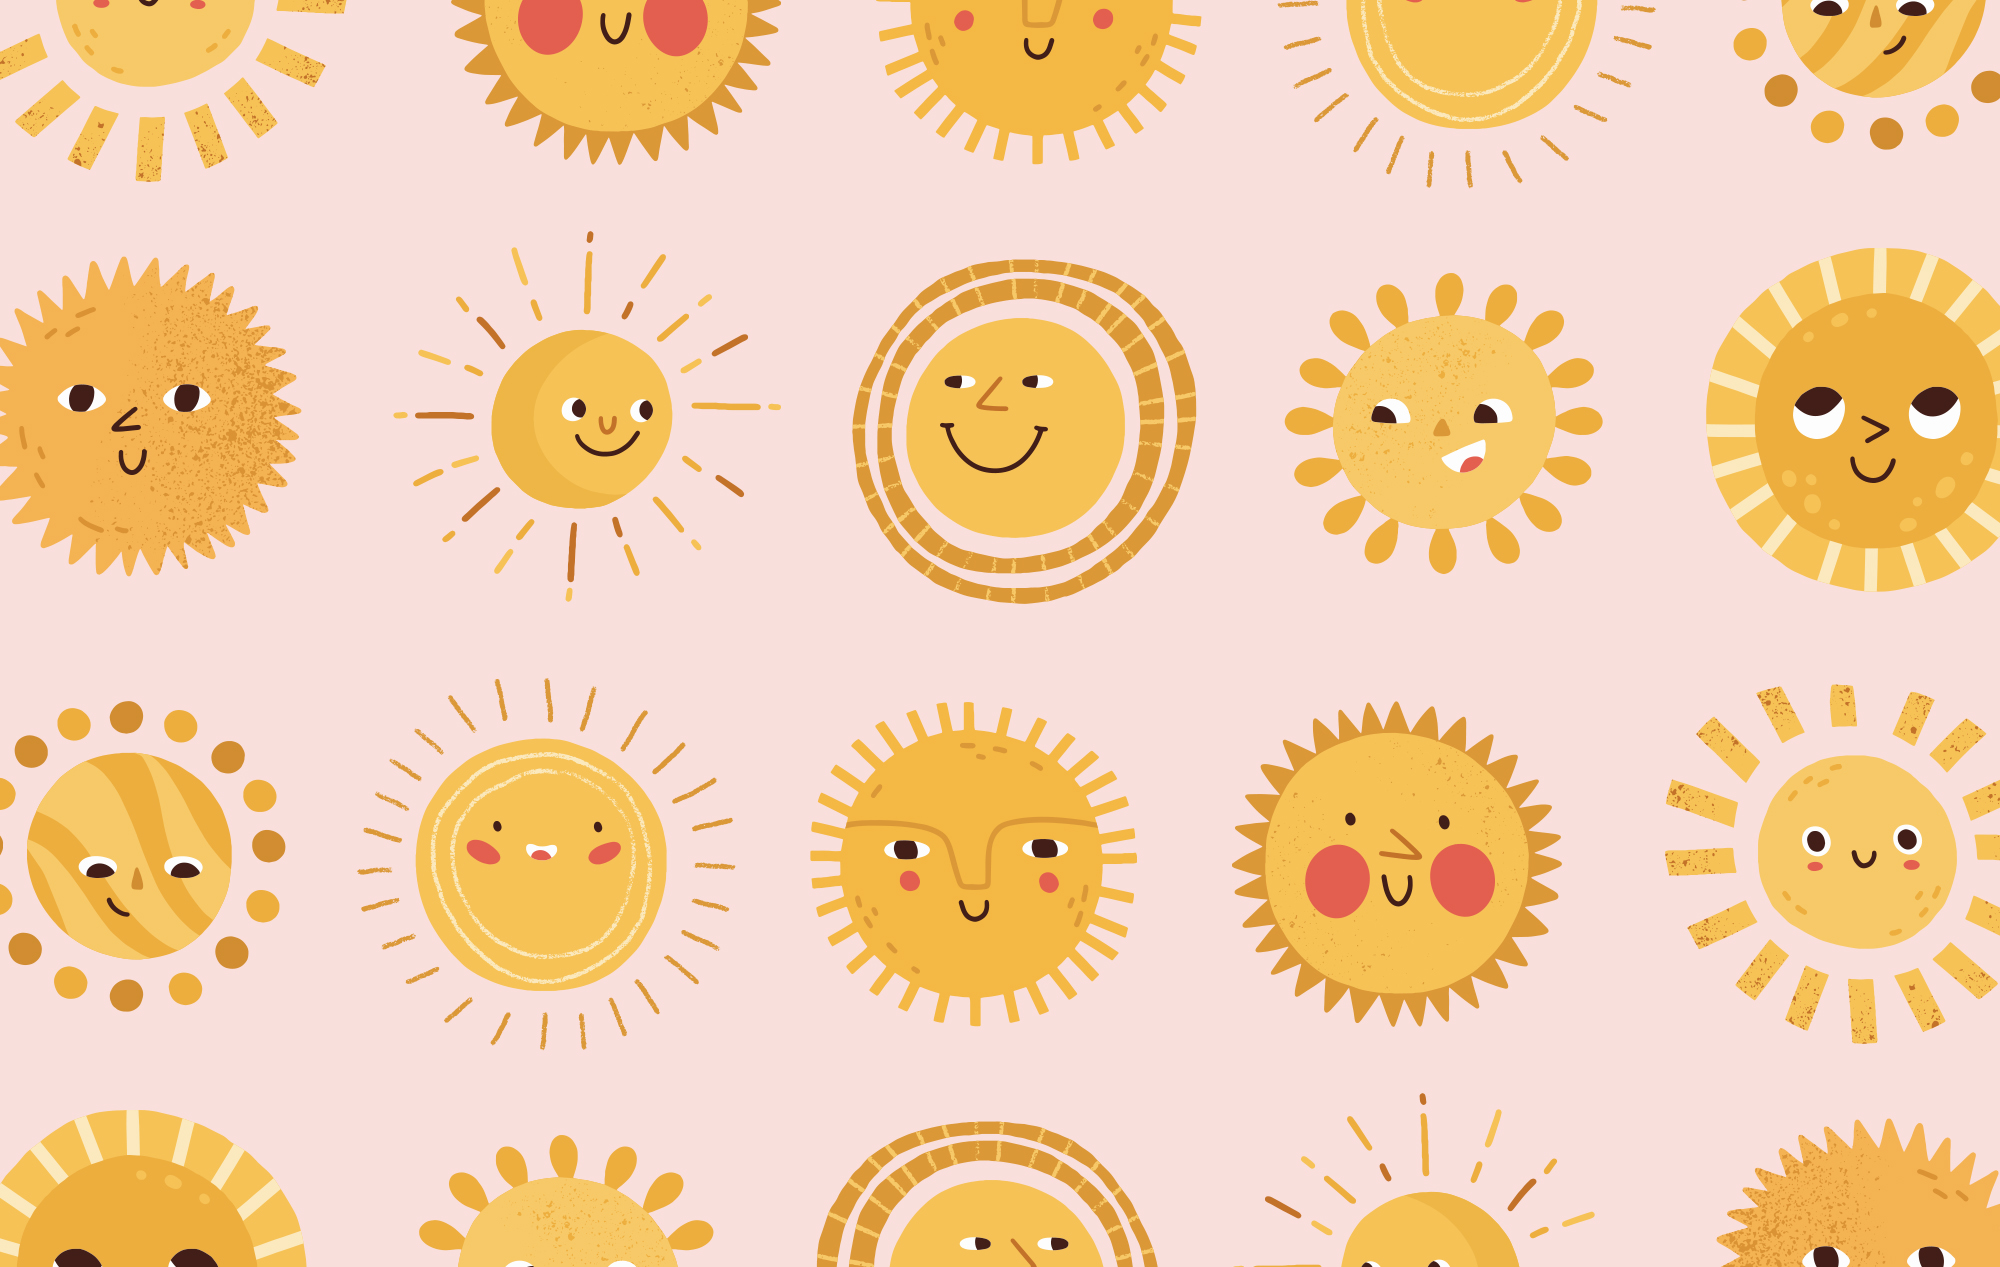 Rows of yellow and orange sun illustrations, all smiling.